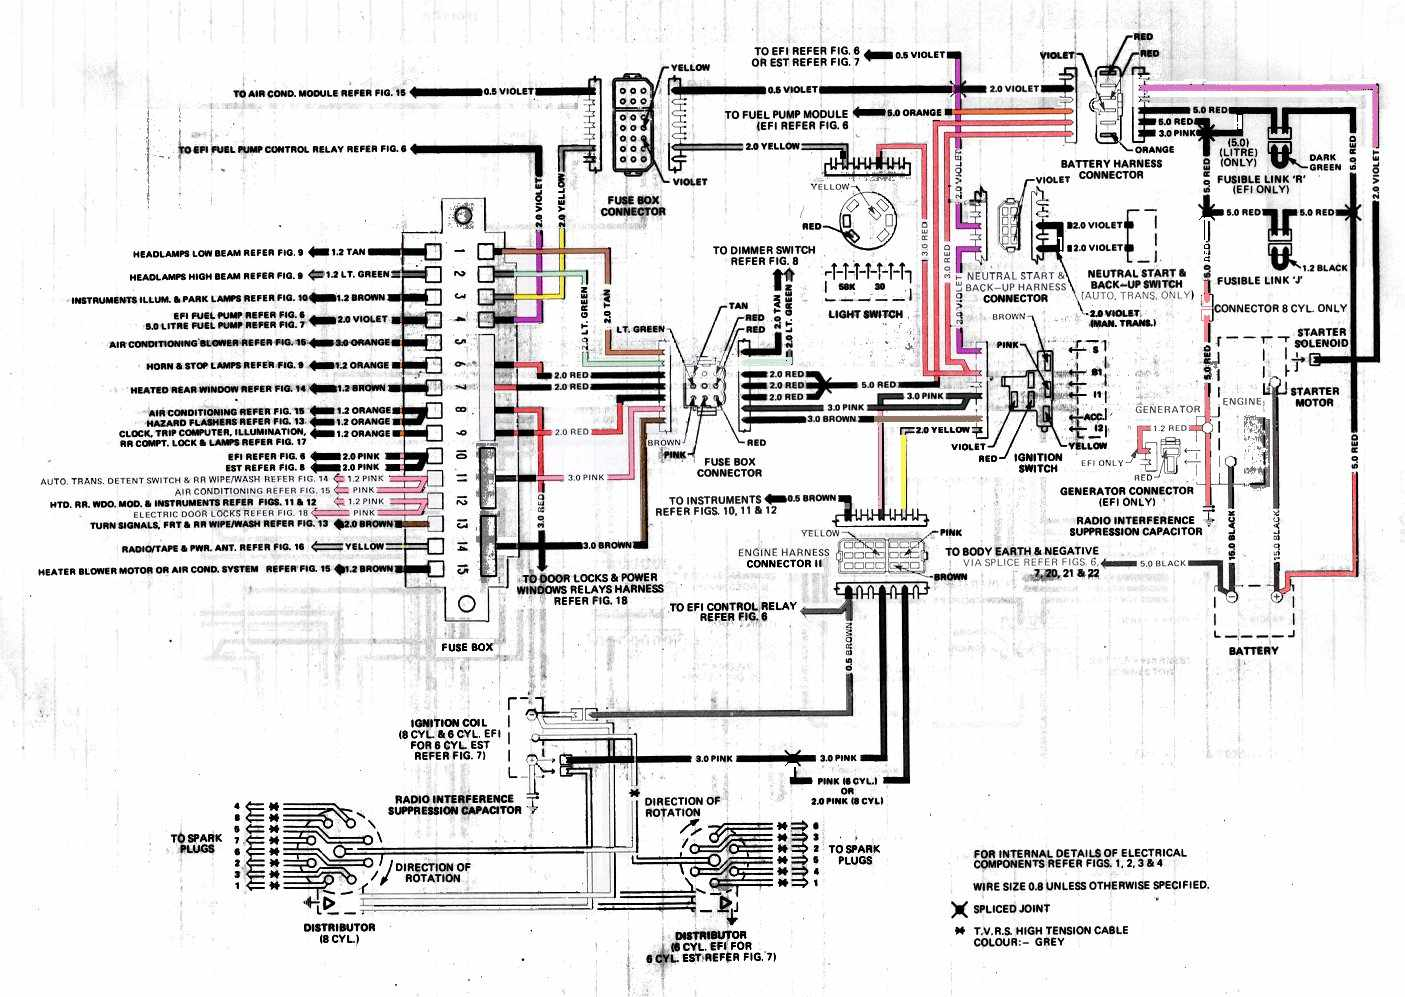 Holden+VK+Commodore+Generator+Electrical+Wiring+Diagram?resize\\\=665%2C472 onan generator with honda engine onan engine problems and solutions onan emerald 1 genset wiring diagram at soozxer.org